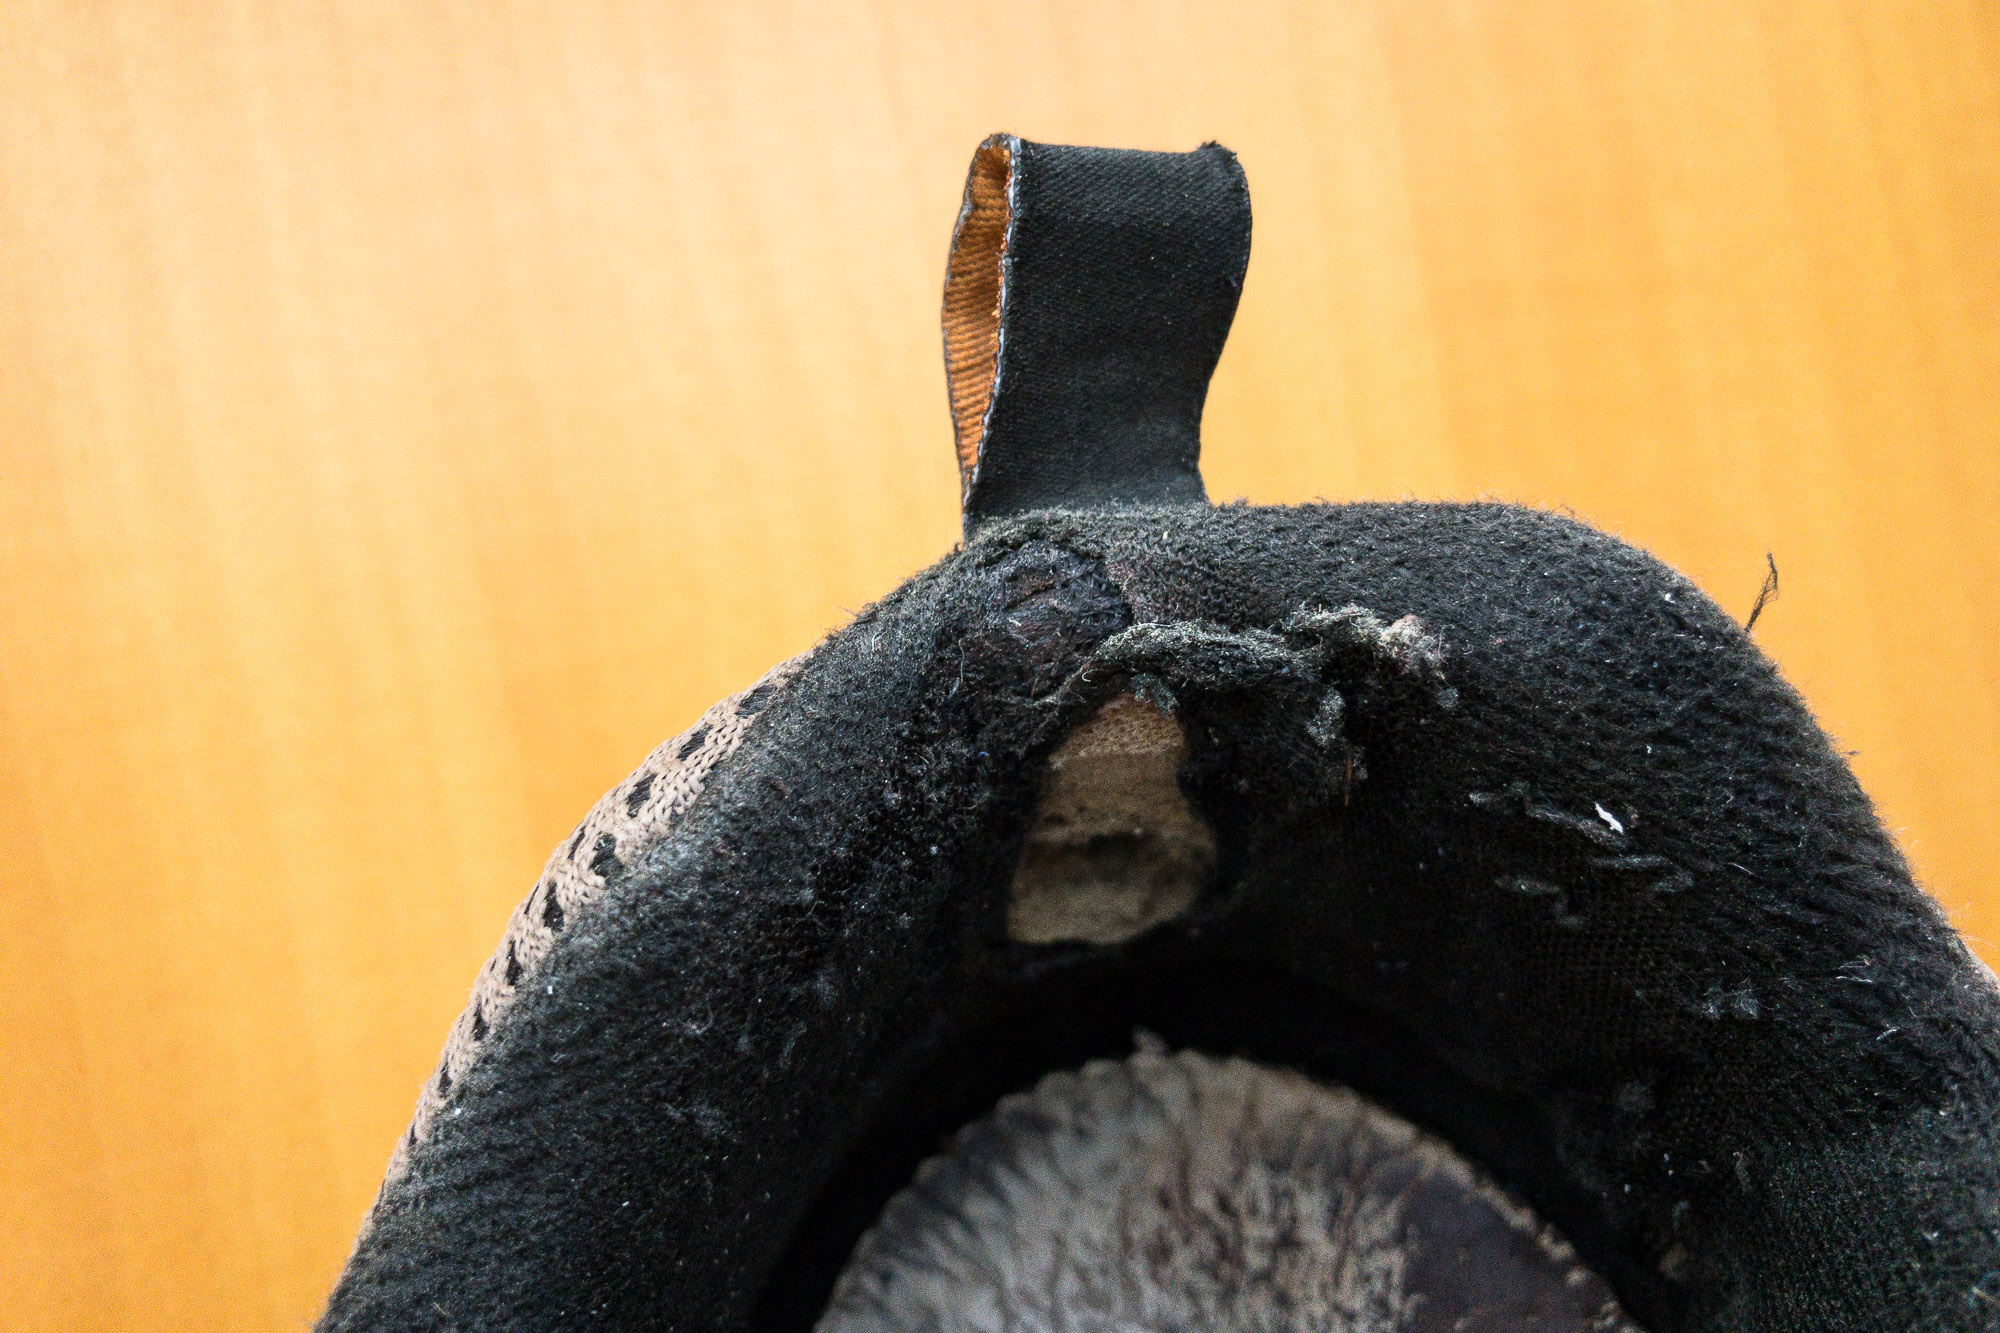 shoe damaged at the heel